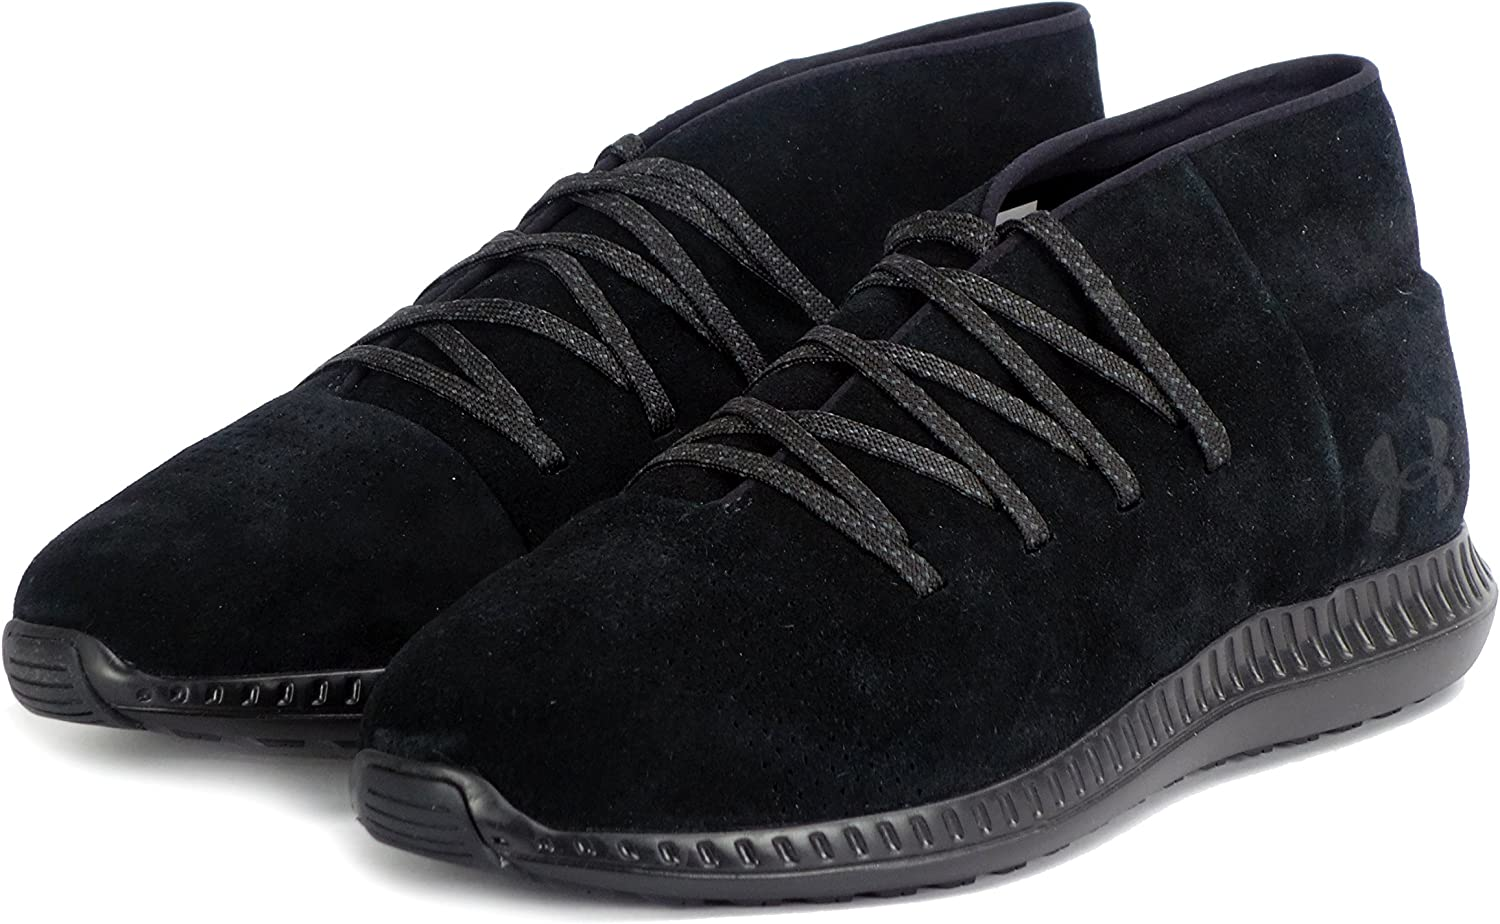 Under Armour Veloce Mid Suede